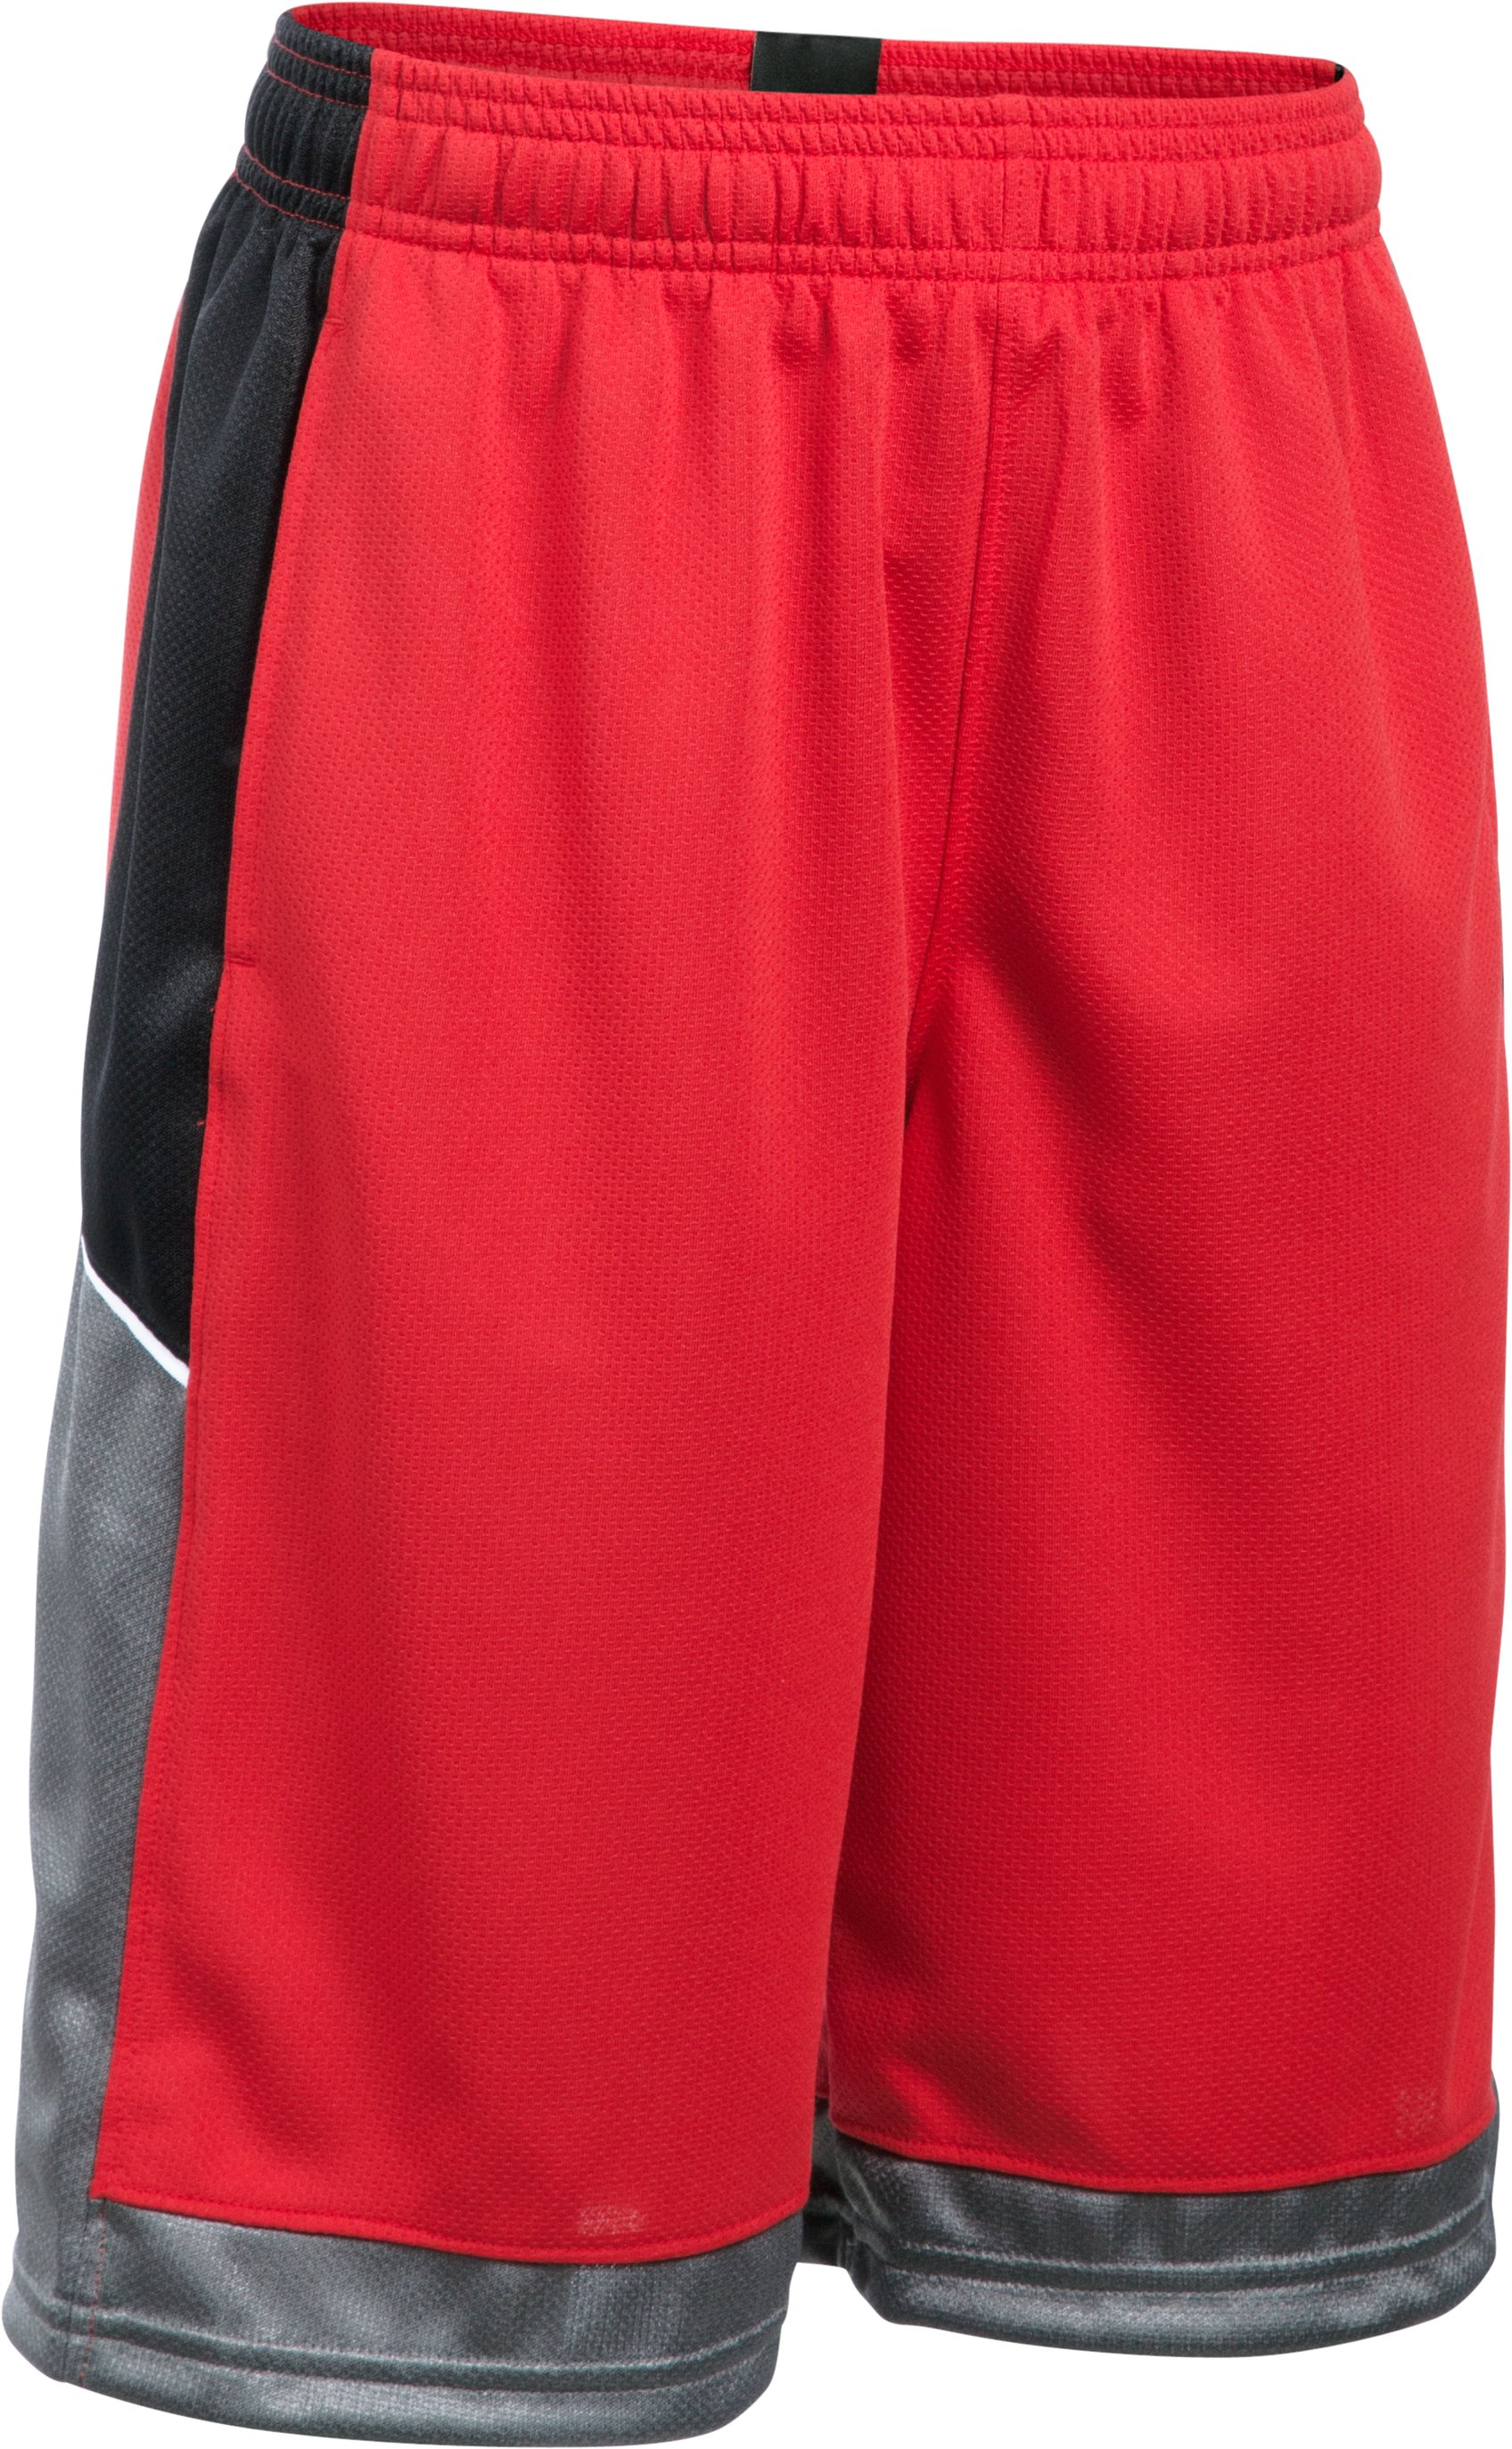 Boys' UA Baseline Basketball Shorts, Red, zoomed image